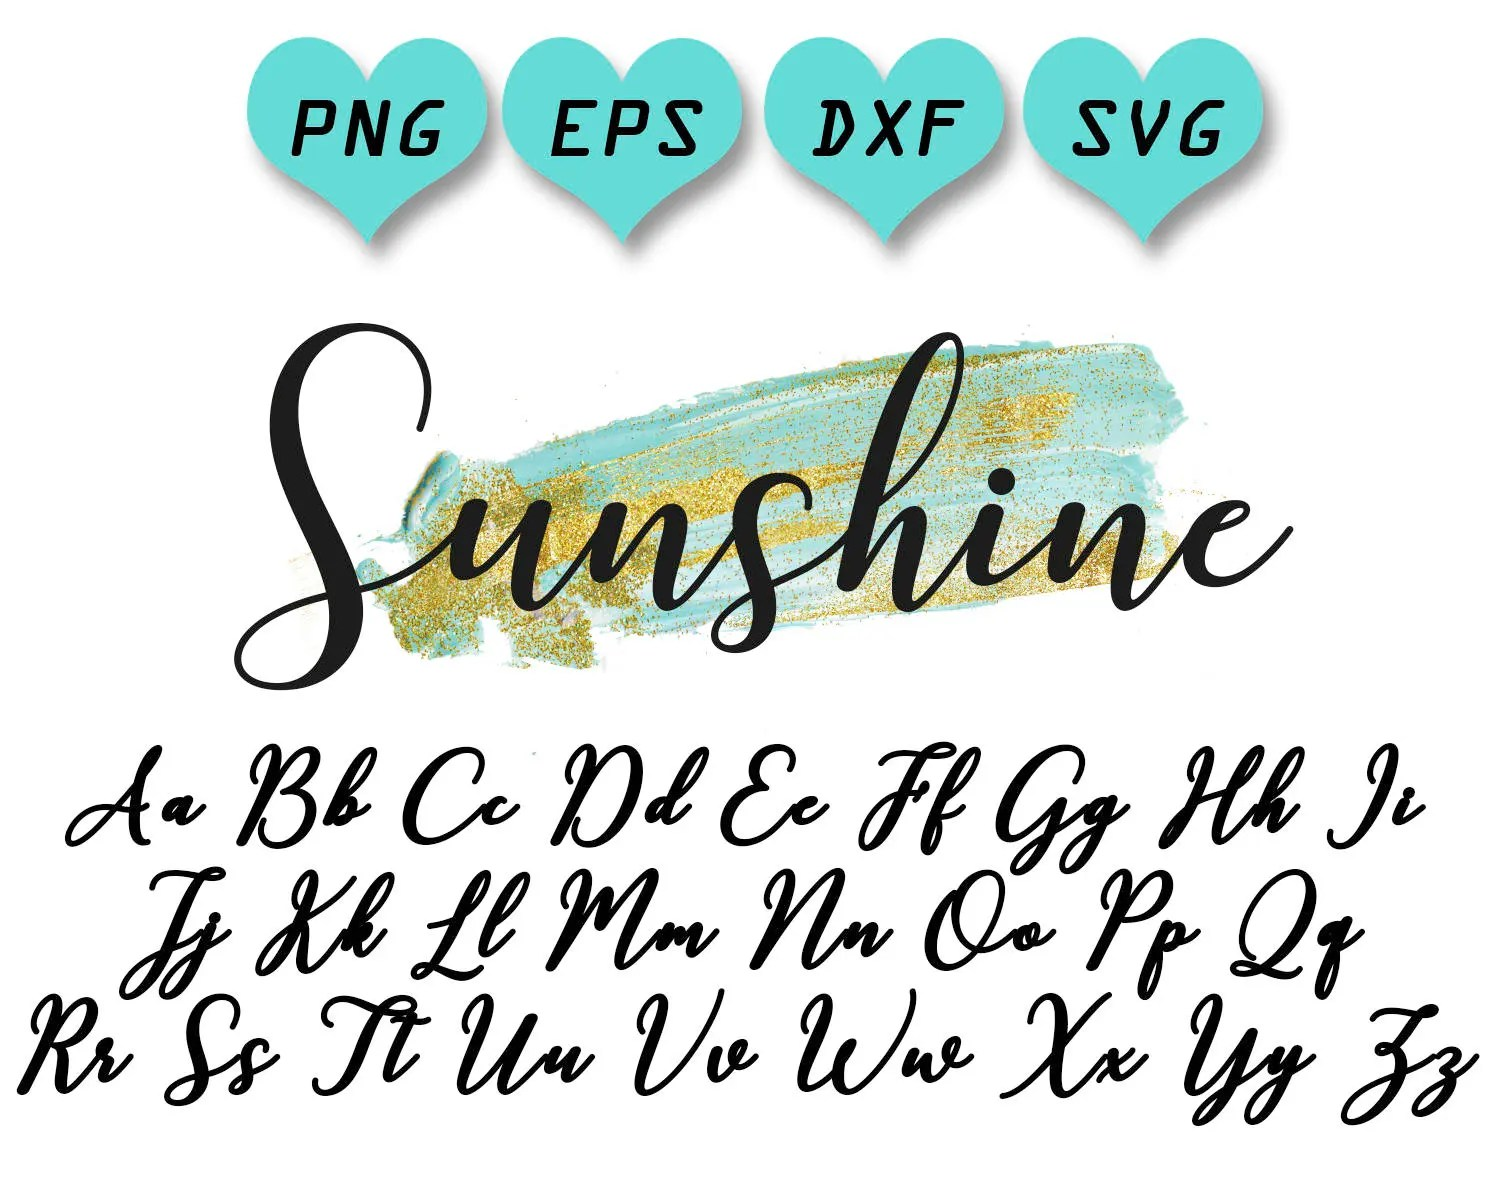 calligraphy svg calligraphy cut files calligraphy font svg Etsy